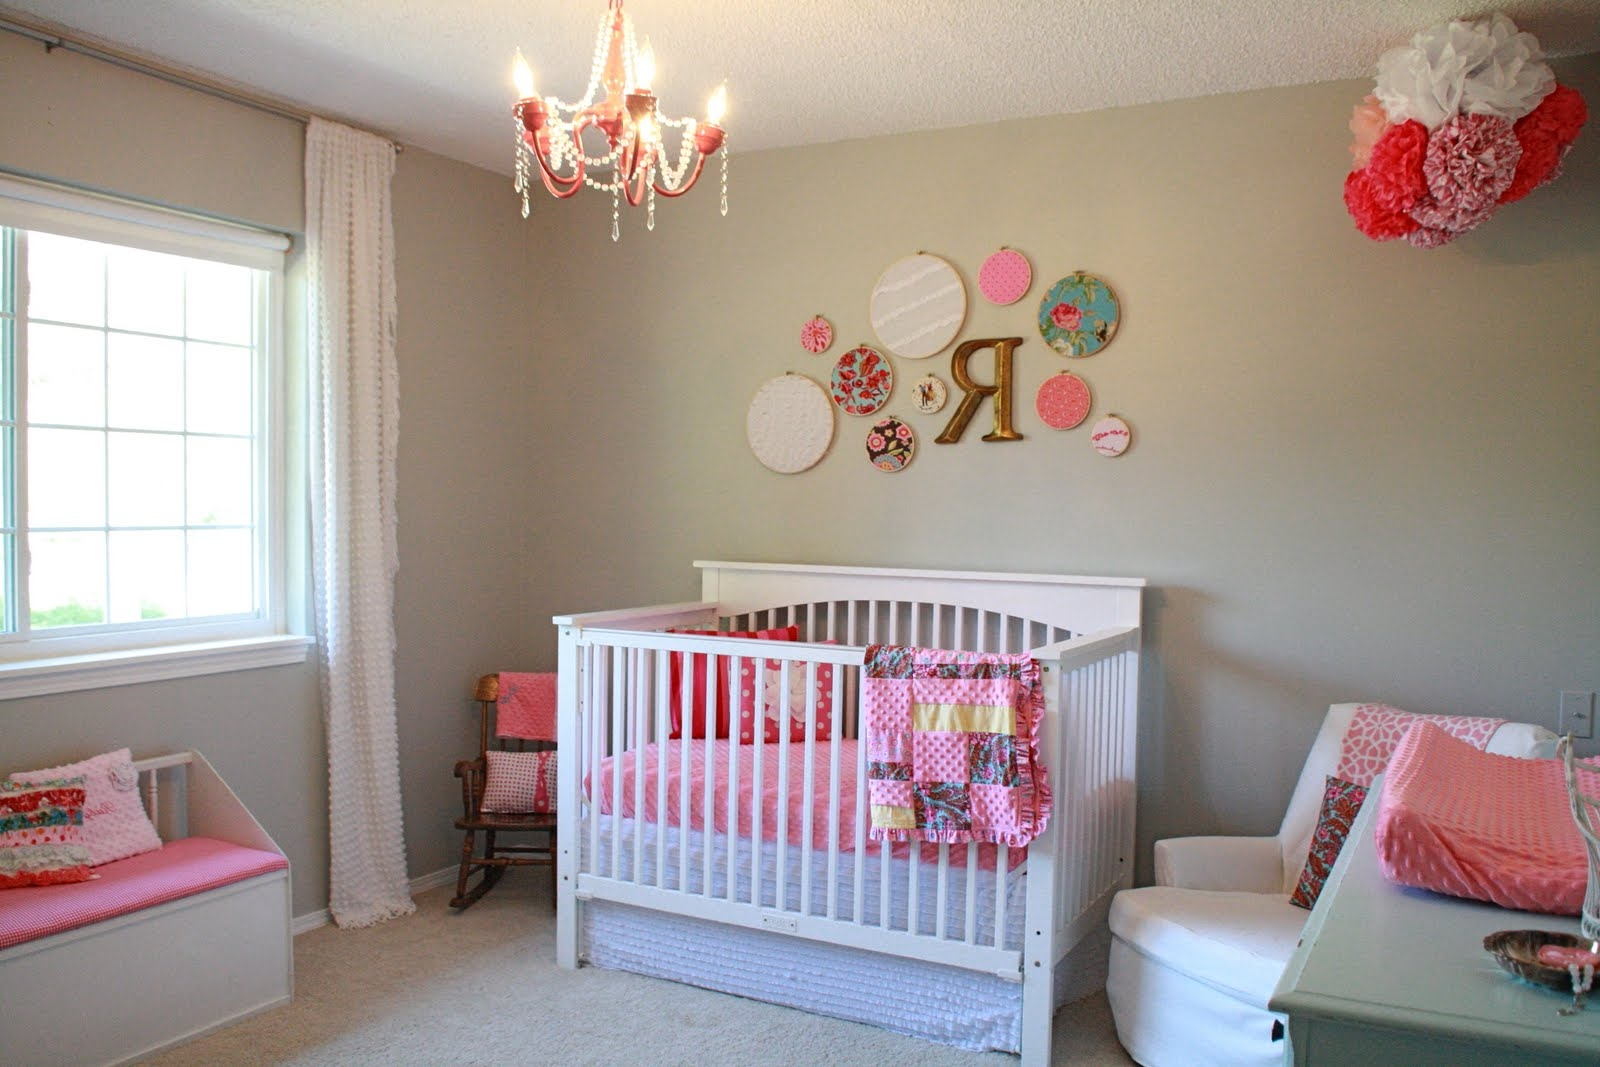 Getting ba nursery room chandeliers home interior for Baby s room decoration ideas